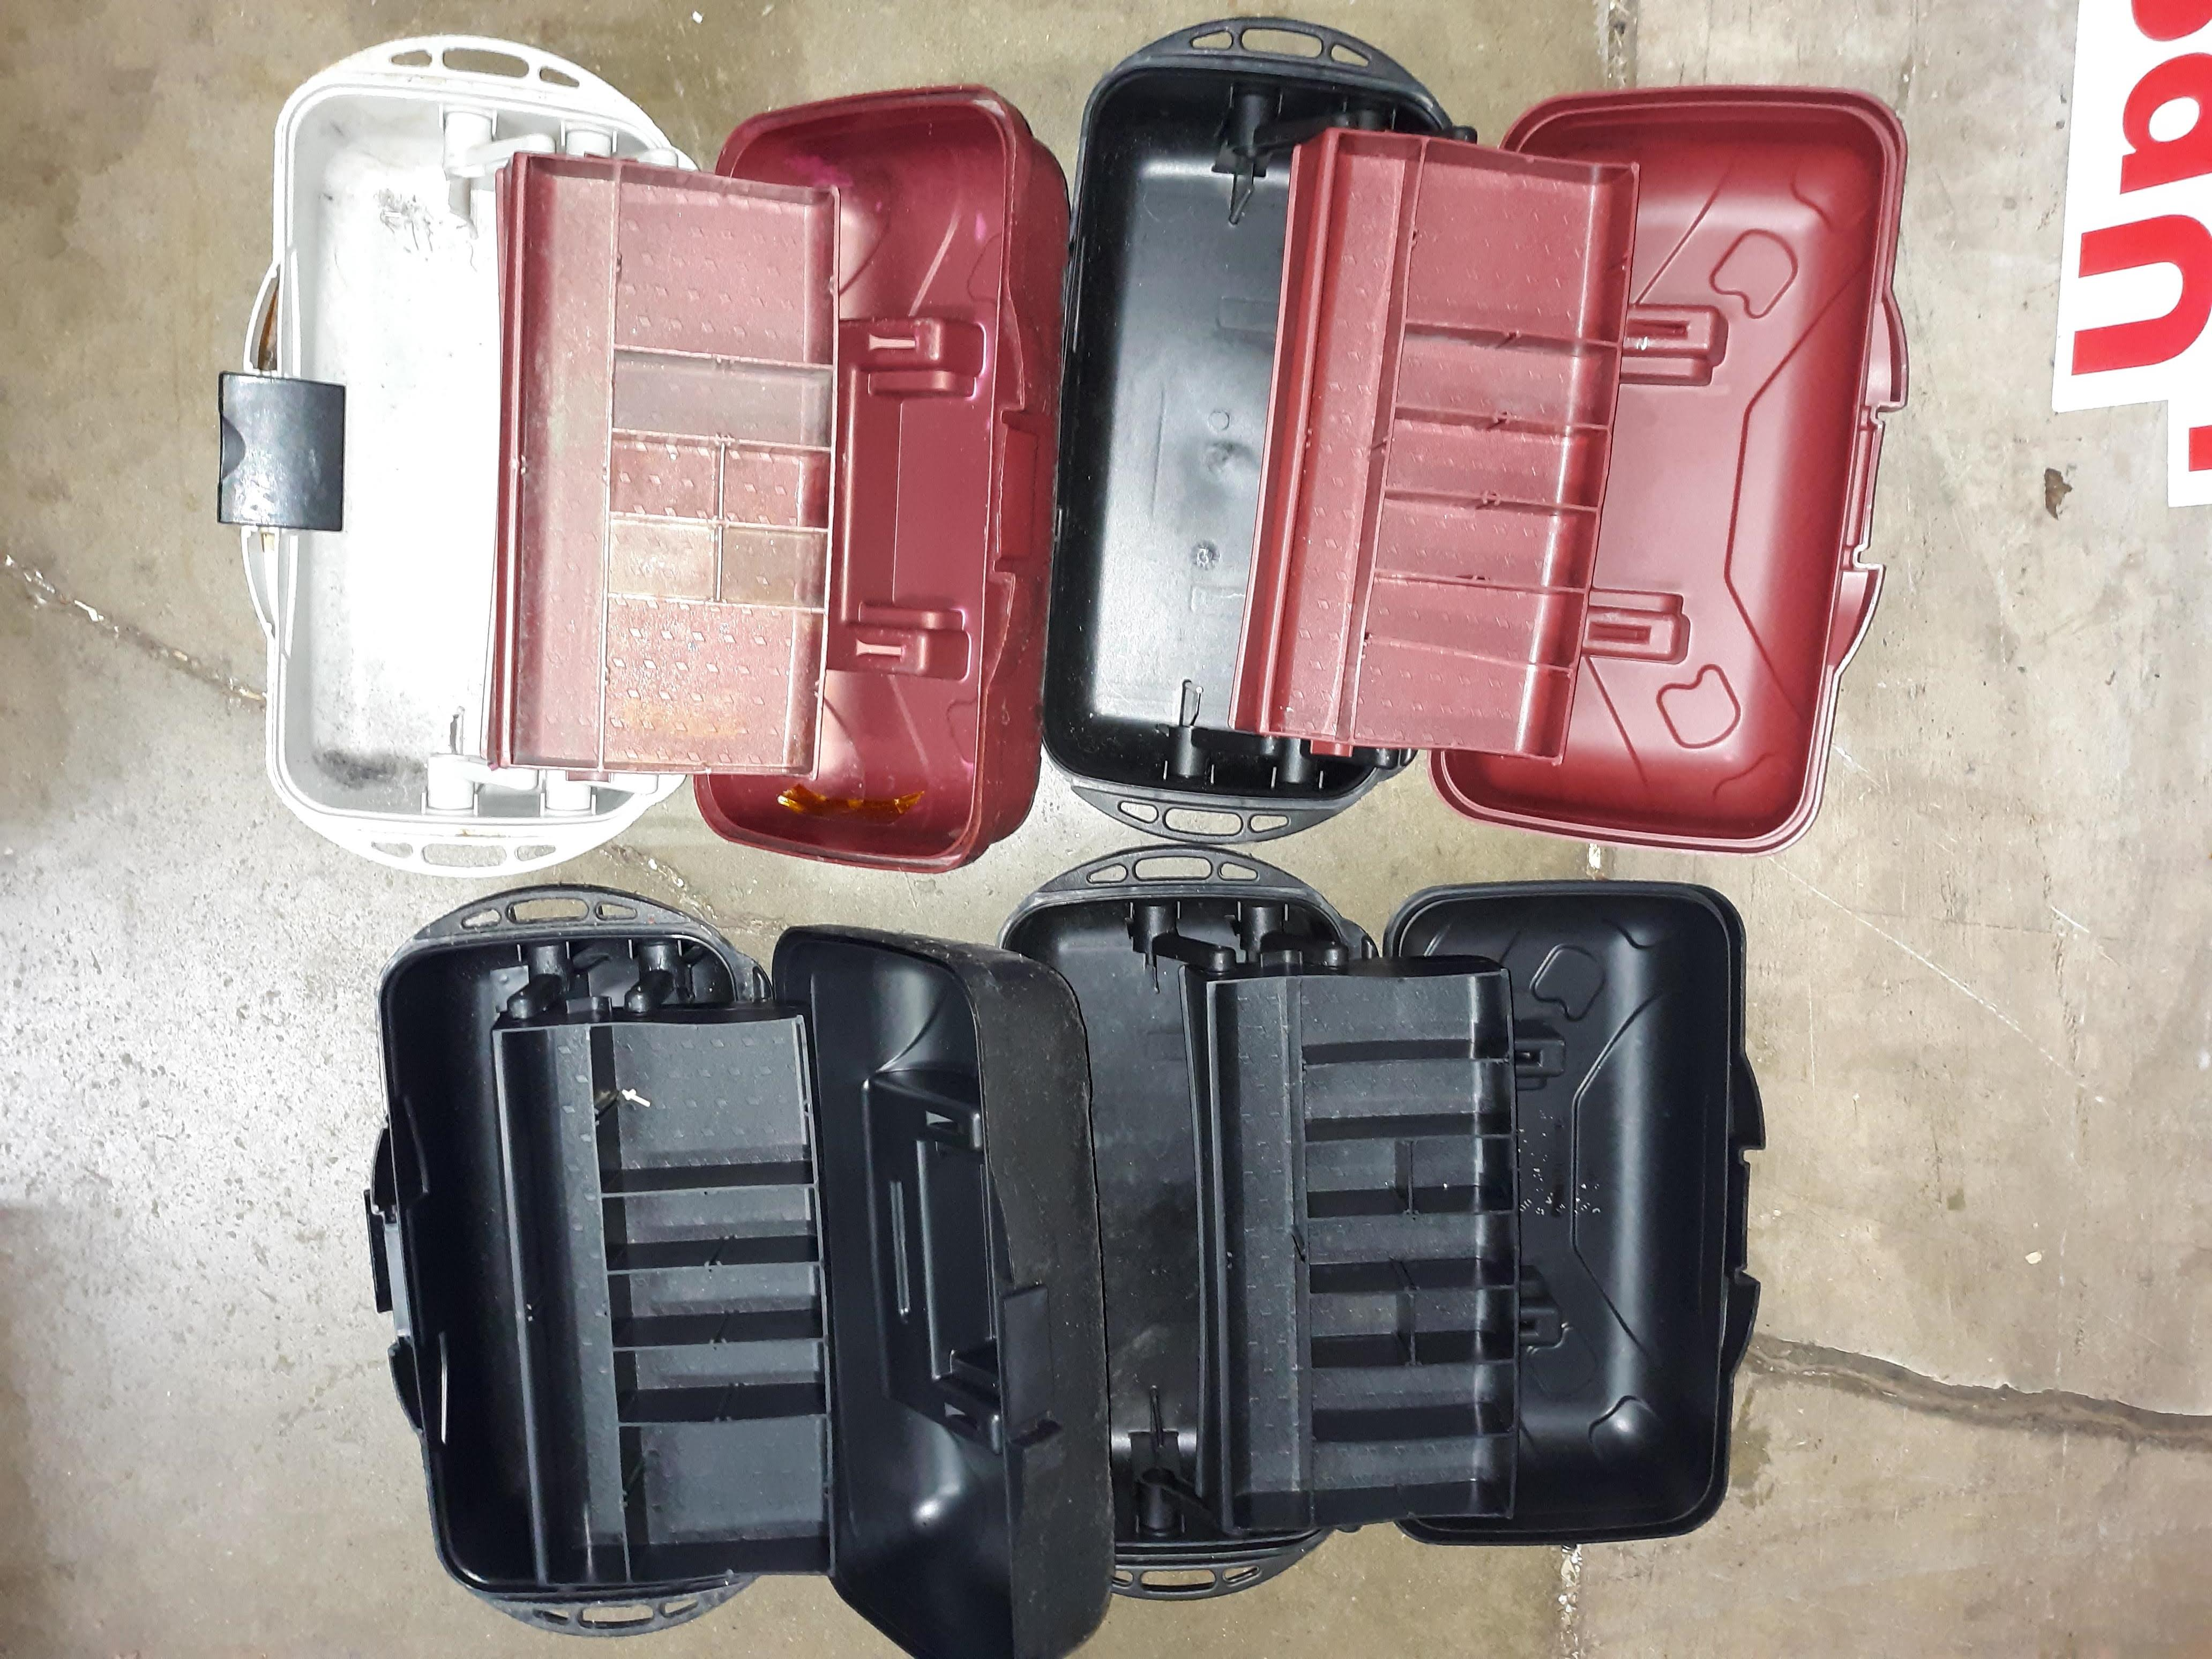 Lot 1105 - (4) PLASTIC TOOL BOX/ TACKLE BOXES (LOCATED AT: 432 COUNCIL DRIVE, FORT WAYNE, IN 46825)